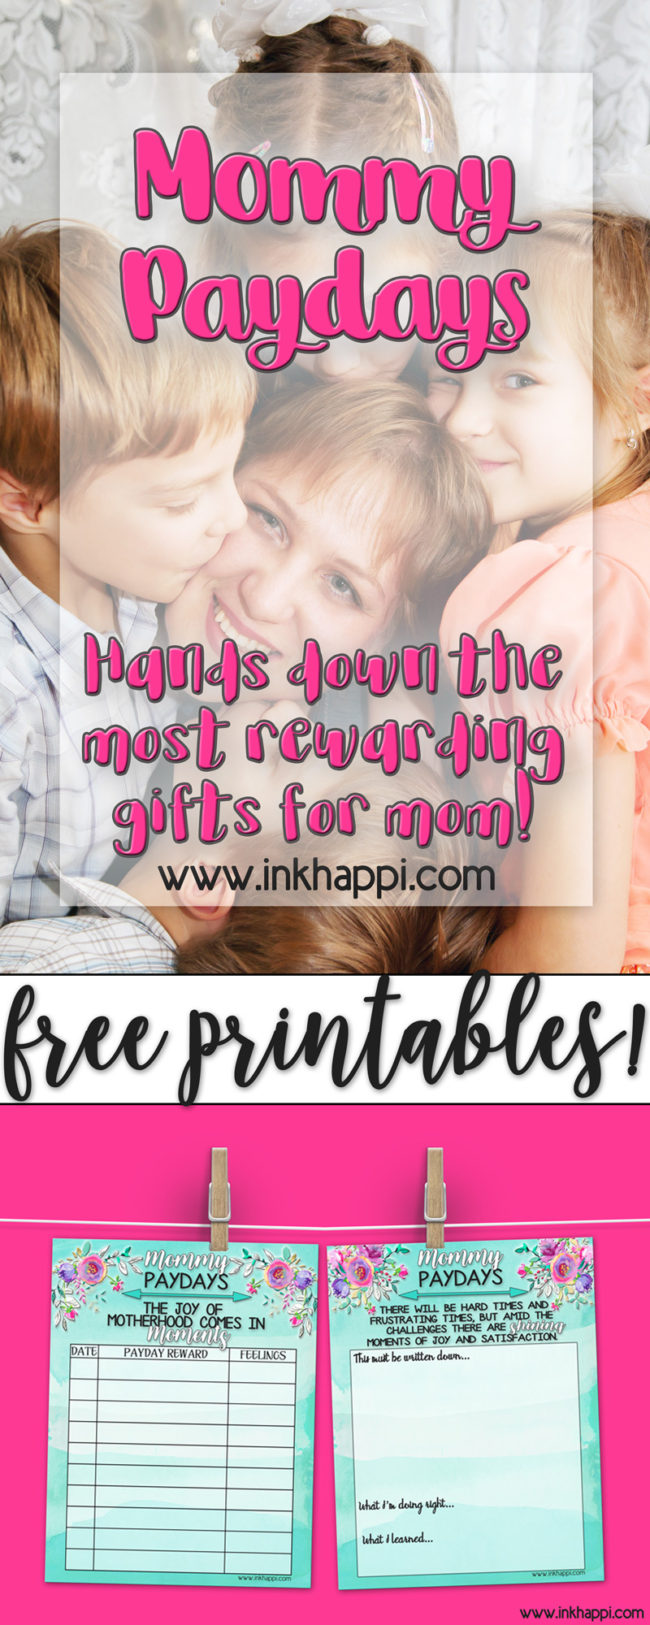 This is for real! Hands down the most rewarding gifts for mom are revealed in this post!